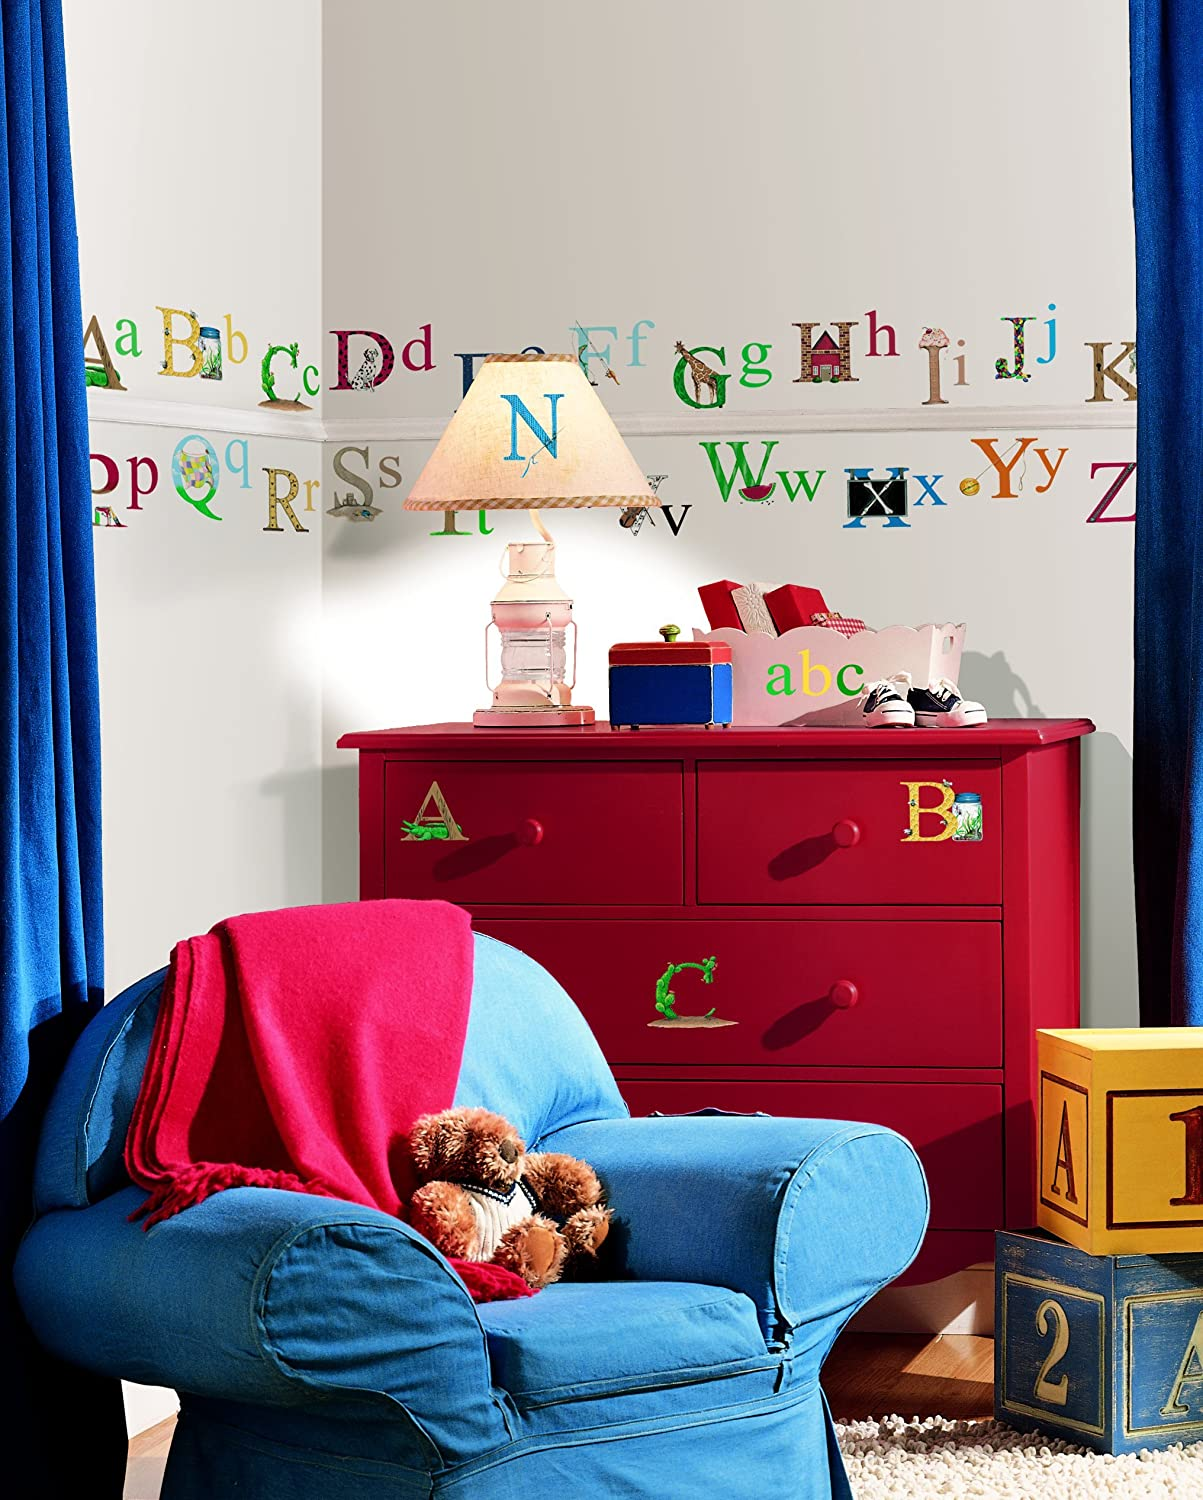 Roommates repositionable childrens wall stickers alphabet amazon roommates repositionable childrens wall stickers alphabet amazon kitchen home amipublicfo Images